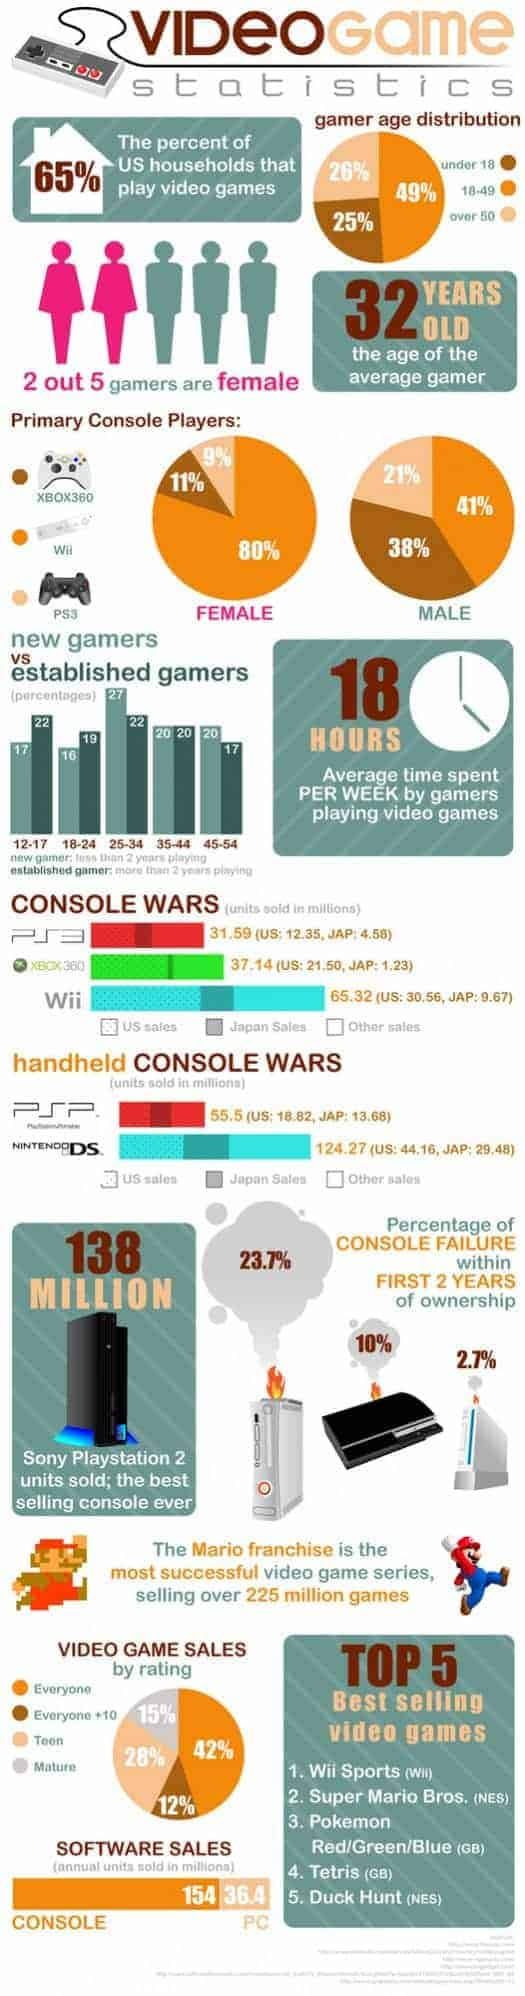 165+ Catchy Game Company Names | Small Business Blog